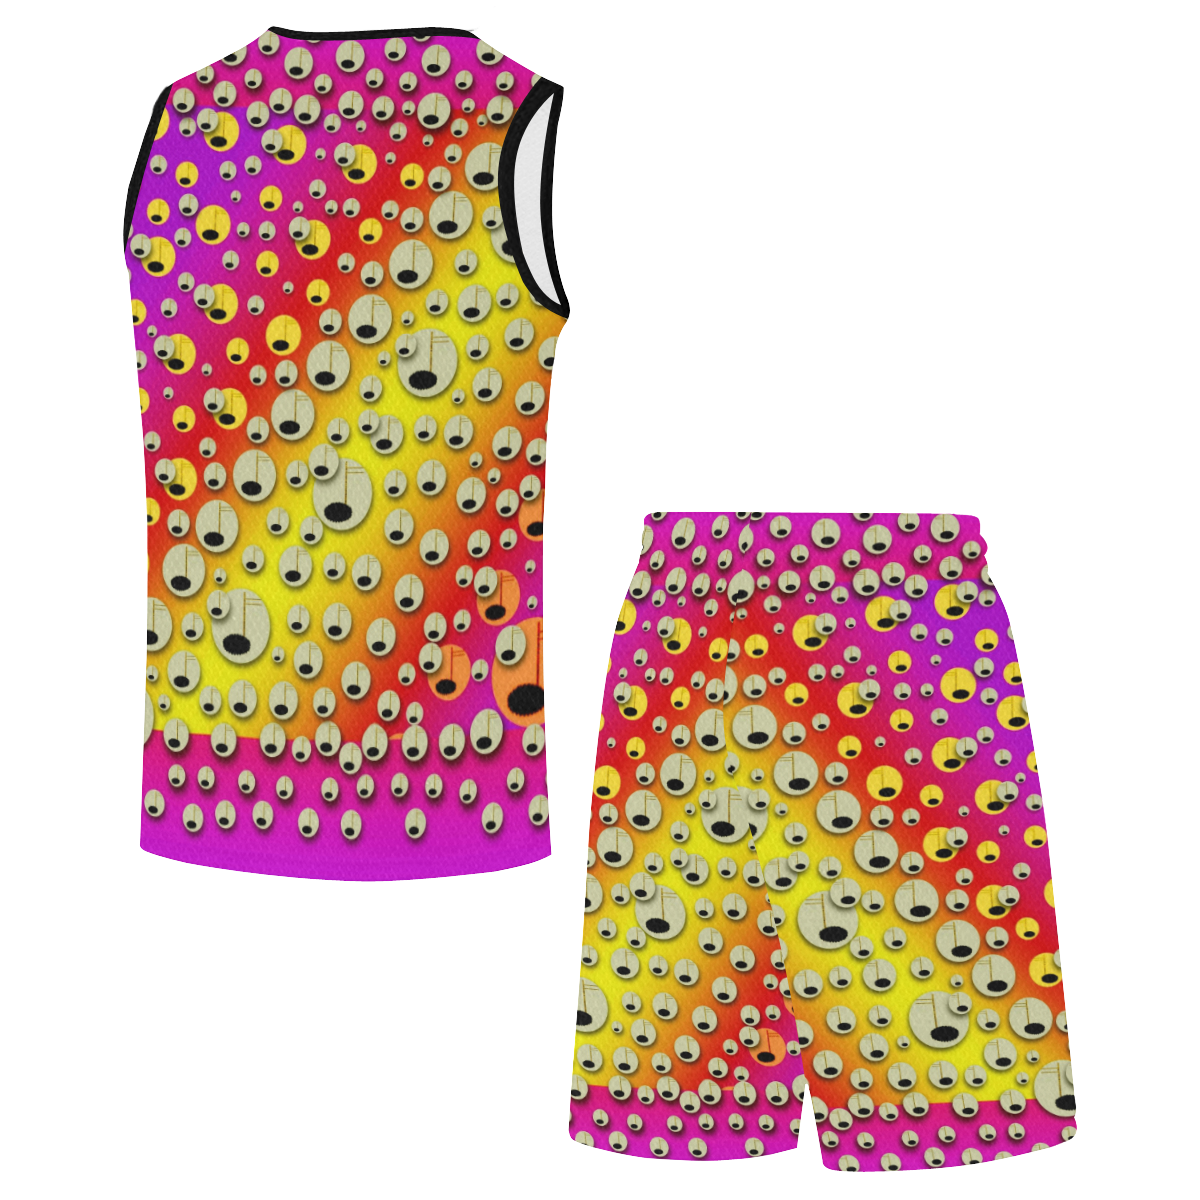 festive music tribute in rainbows All Over Print Basketball Uniform